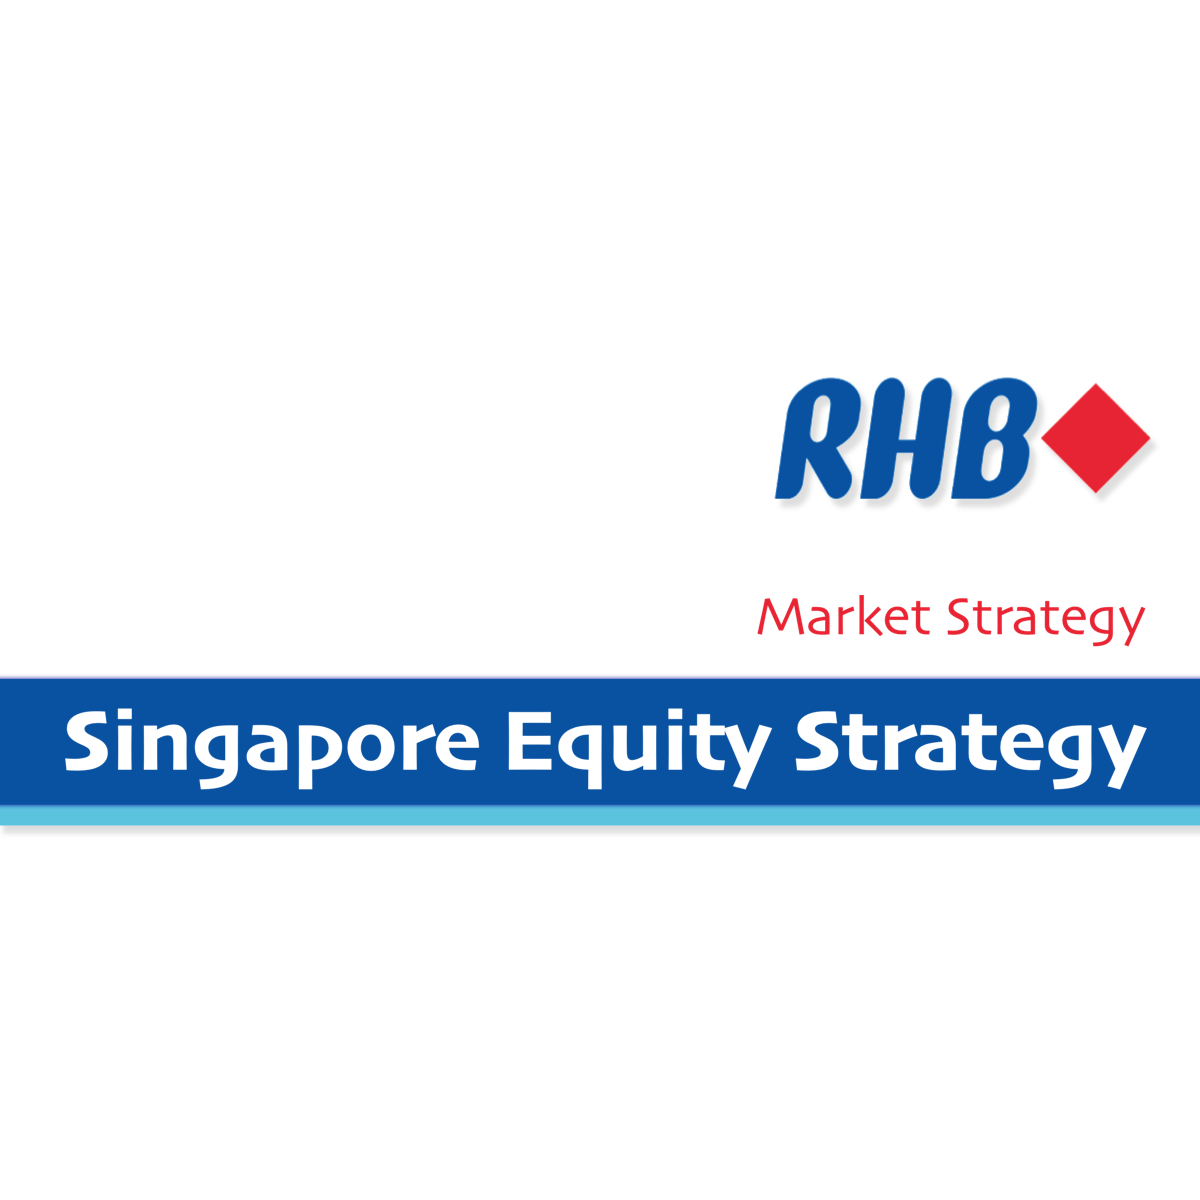 Singapore Market Strategy - RHB Investment Research | SGinvestors.io